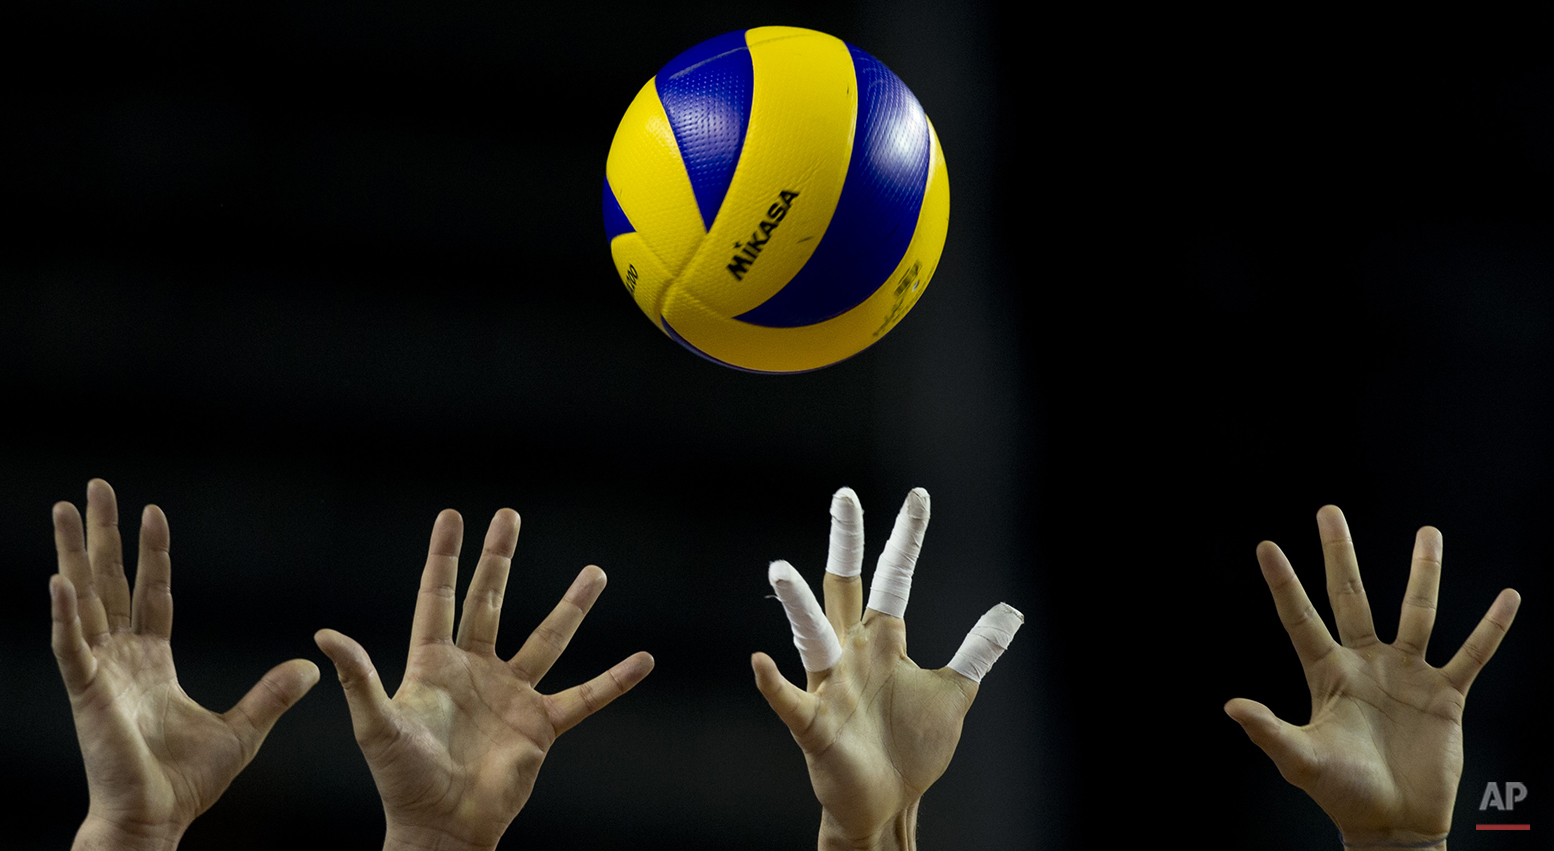 Bulgaria's players try to stop a spike from Brazil during a 2013 Volleyball World League semifinal match in Mar del Plata, Argentina, Saturday, July 20, 2013. Brazil won 3-1. (AP Photo/Natacha Pisarenko)